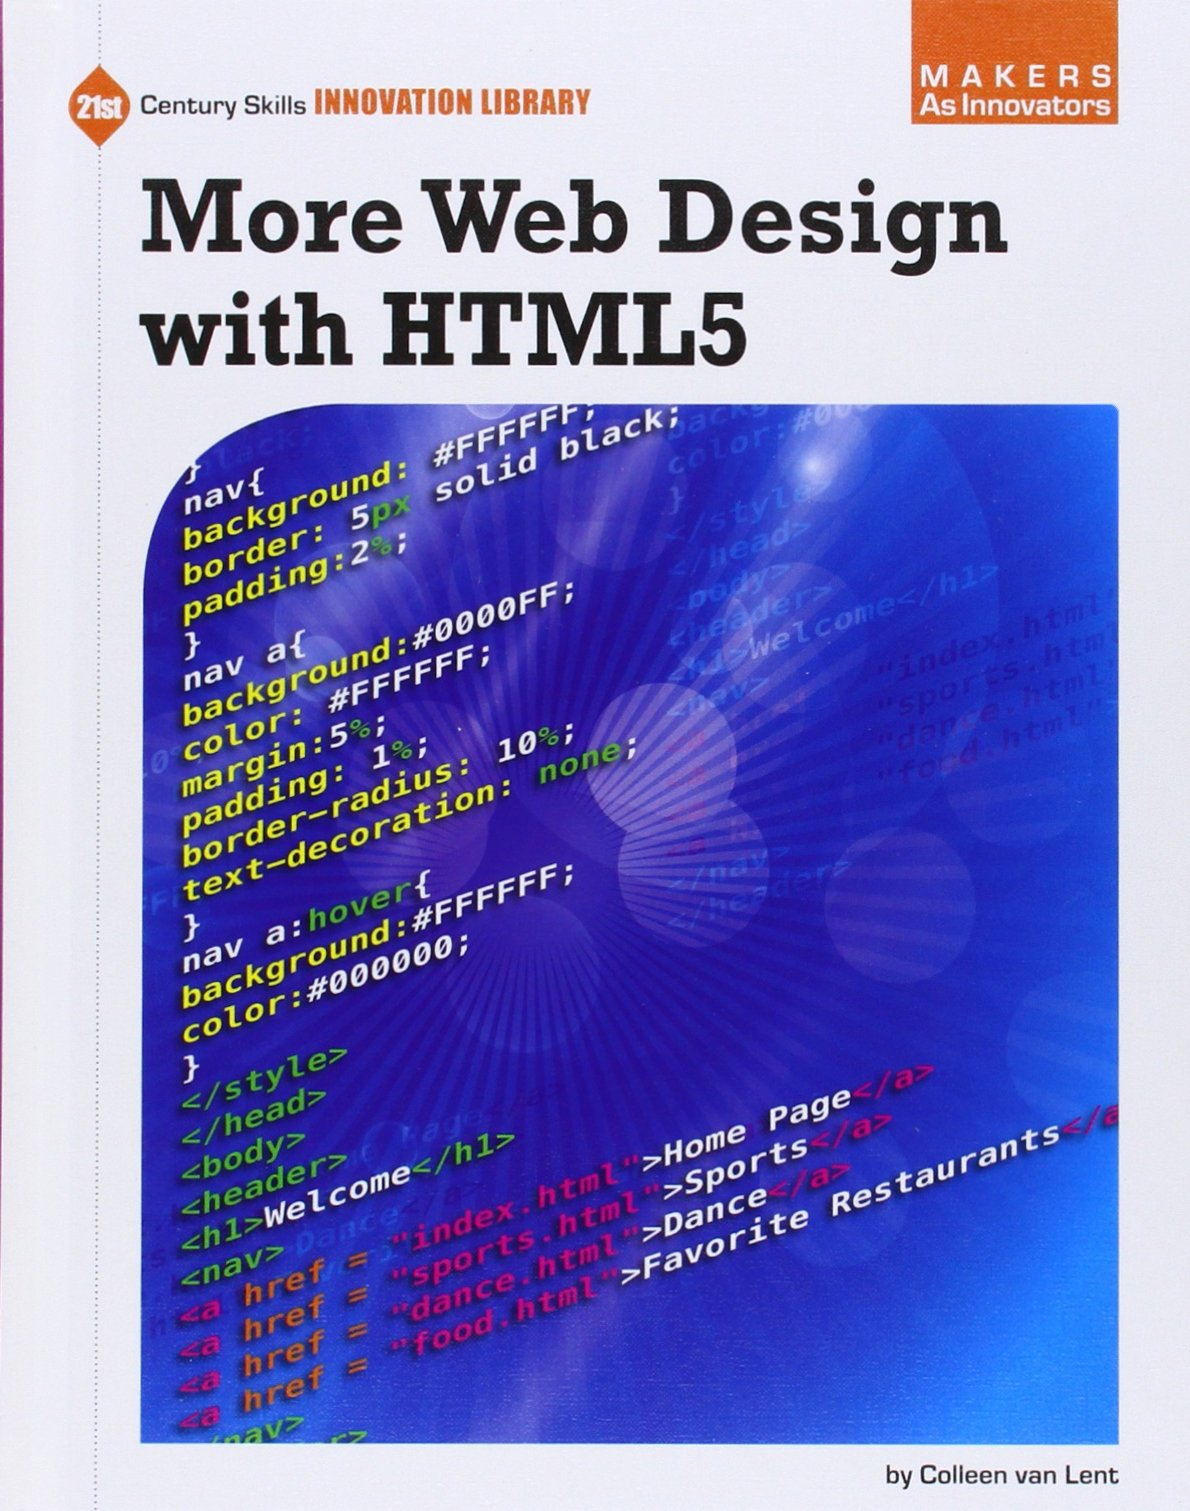 More Web Design With HTML5 (21st Century Skills Innovation Library: Makers As Innovators) by Cherry Lake Pub